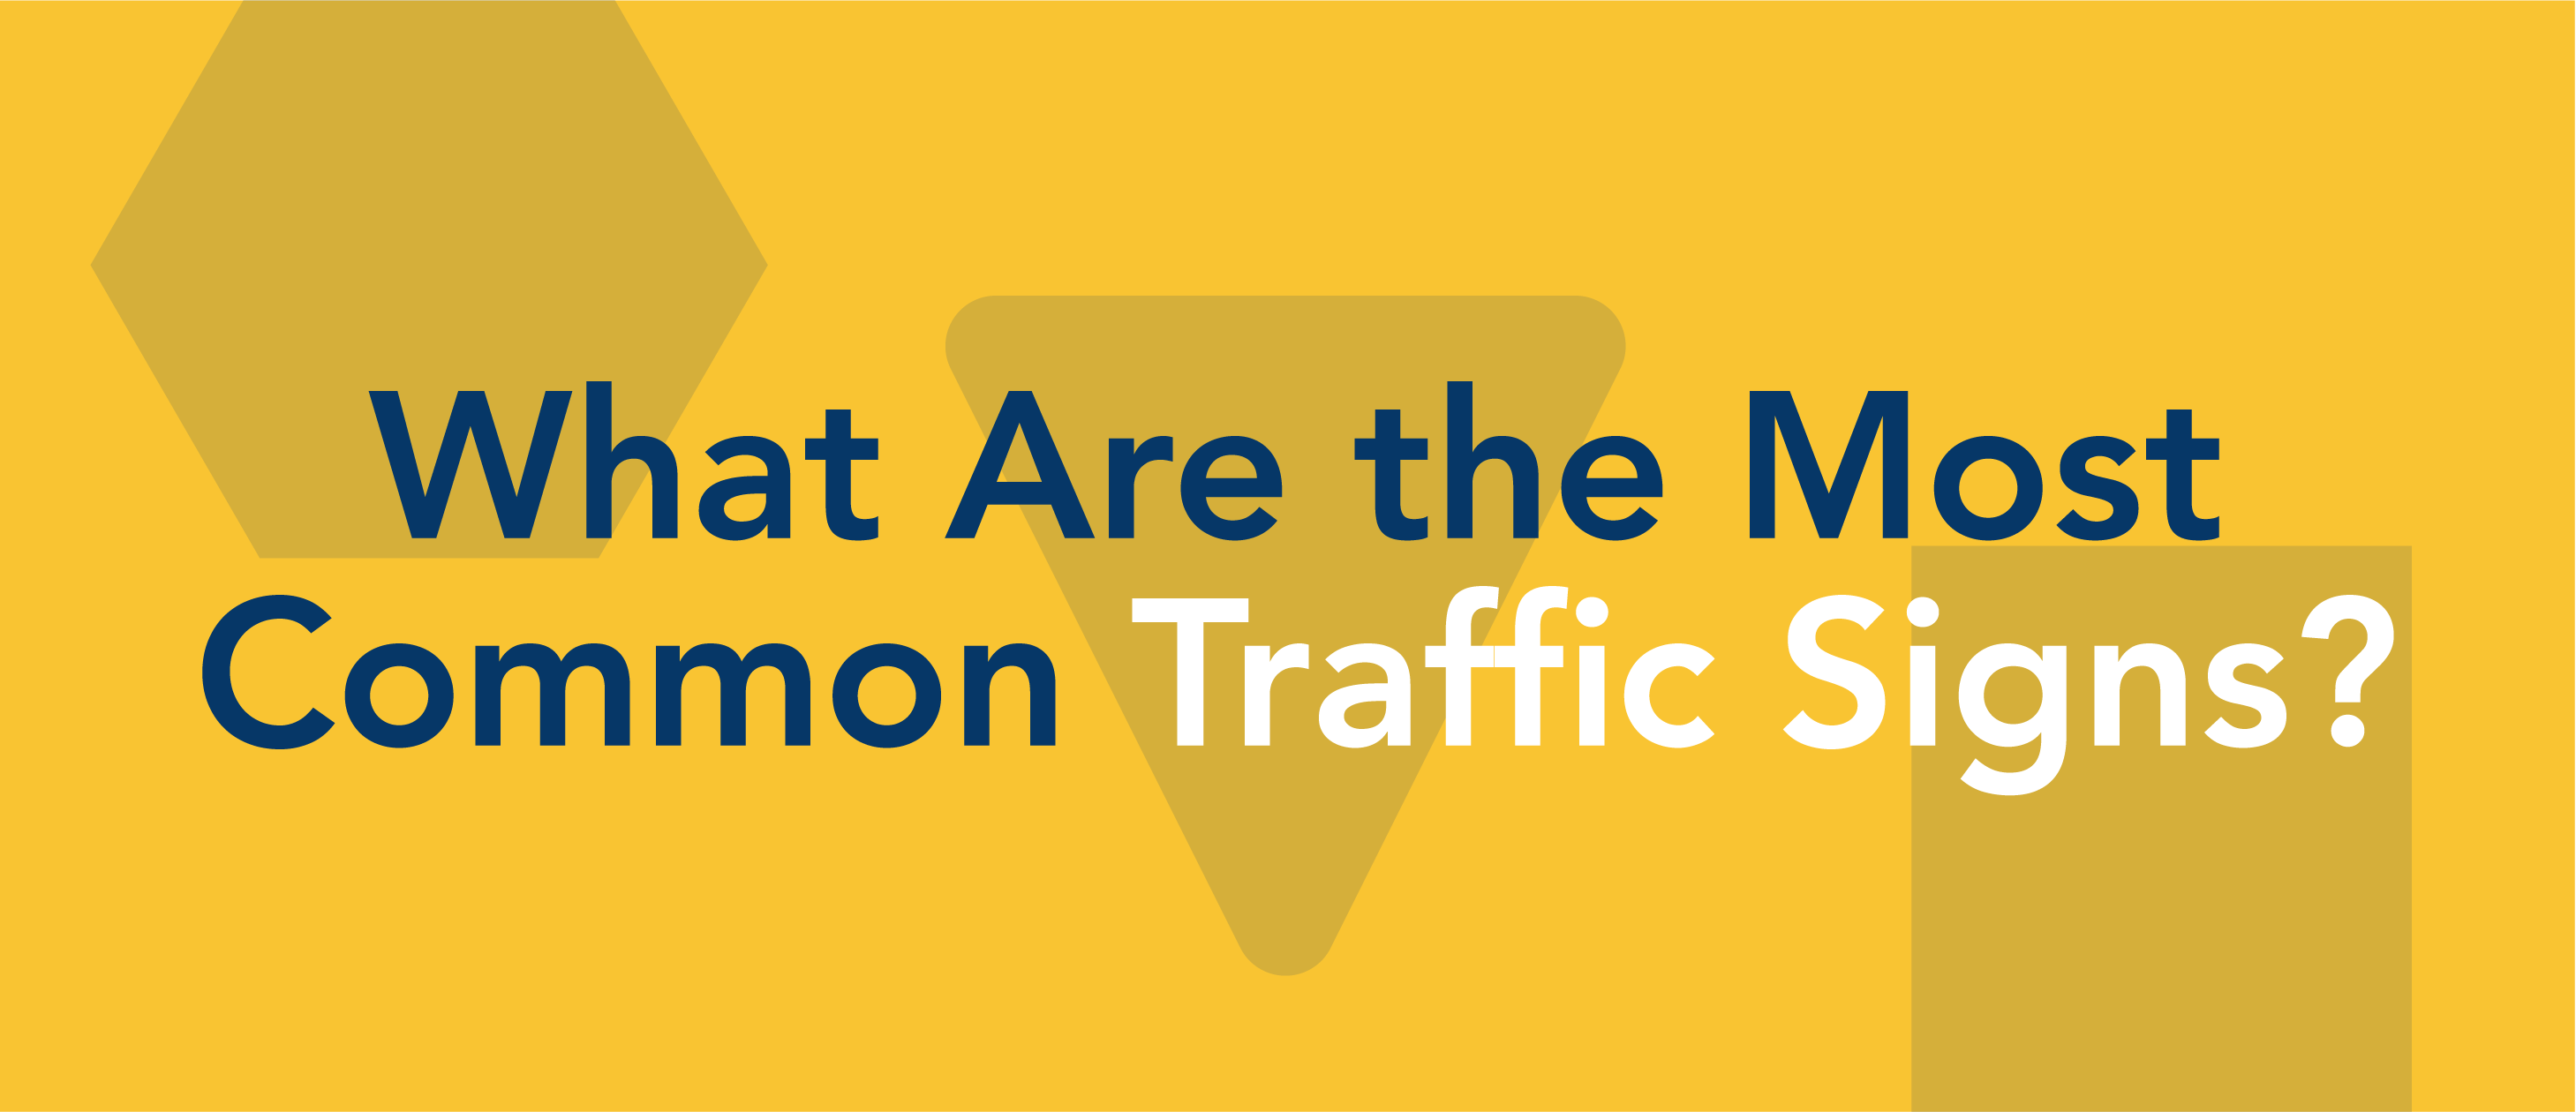 most common traffic signs